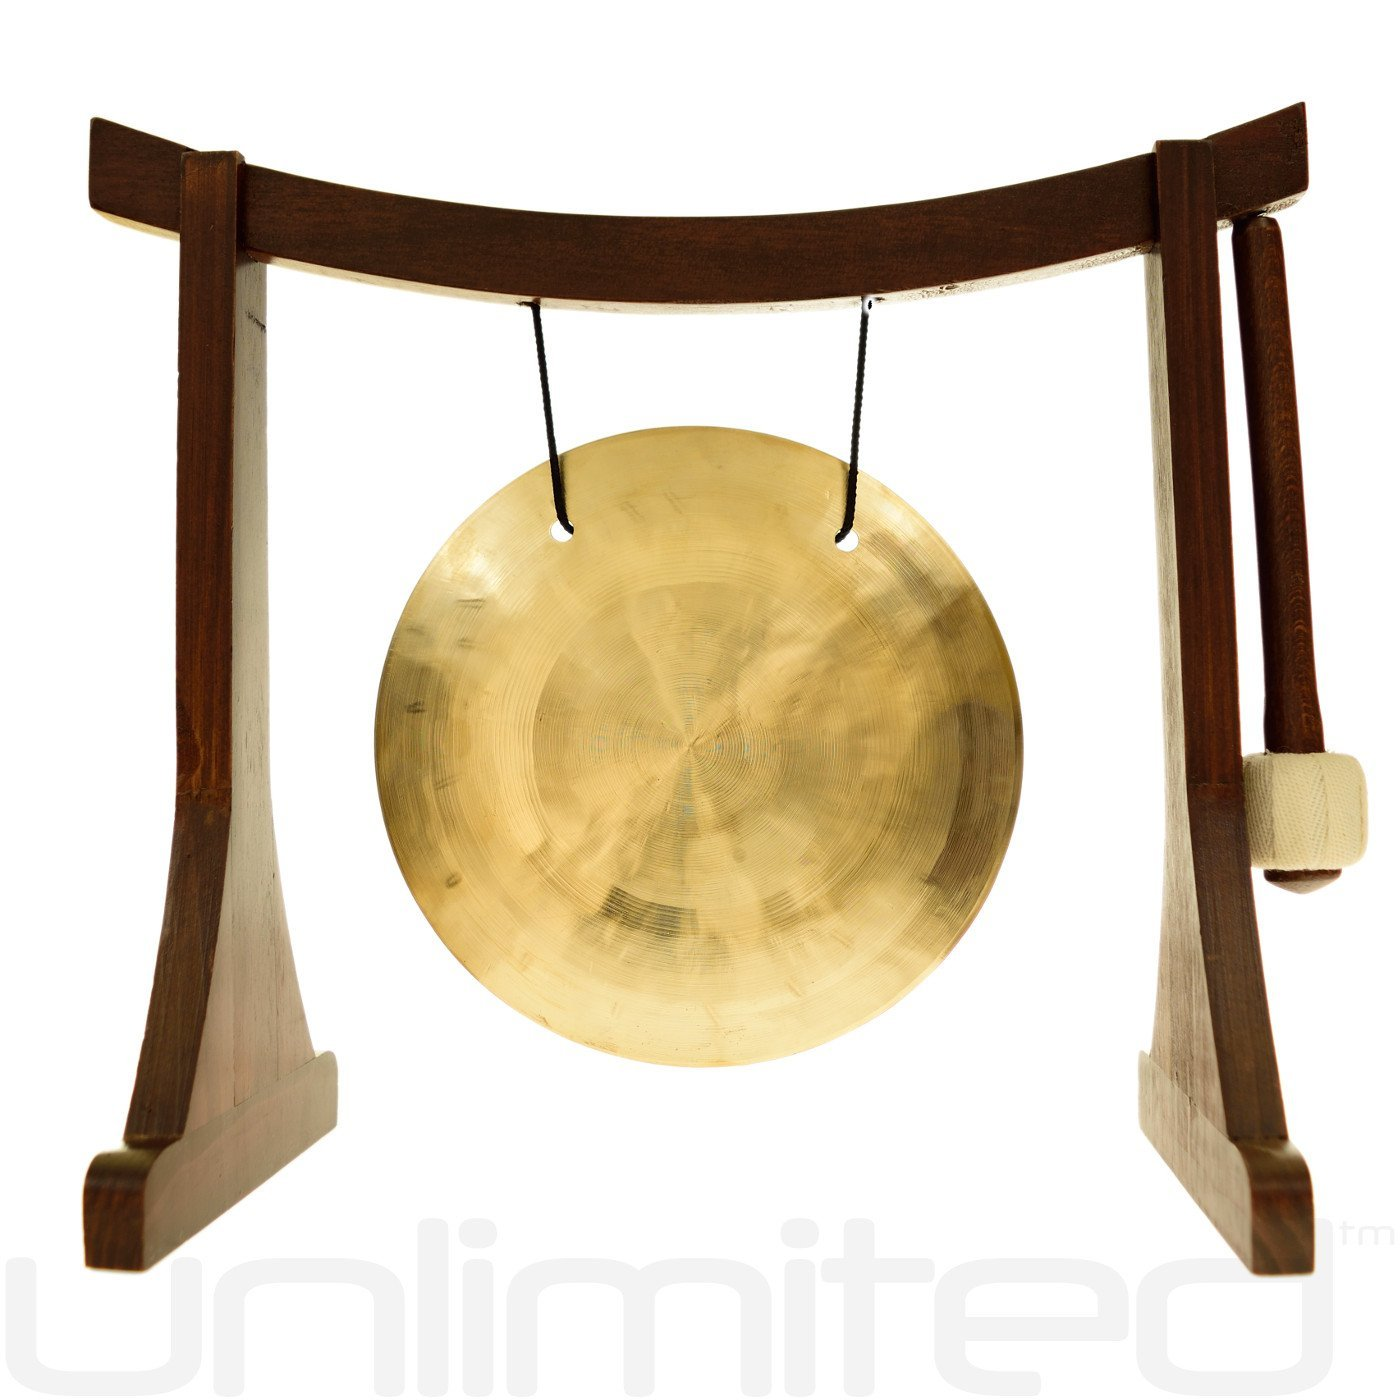 6'' to 7'' Gongs on the Lifting Buddha Stand